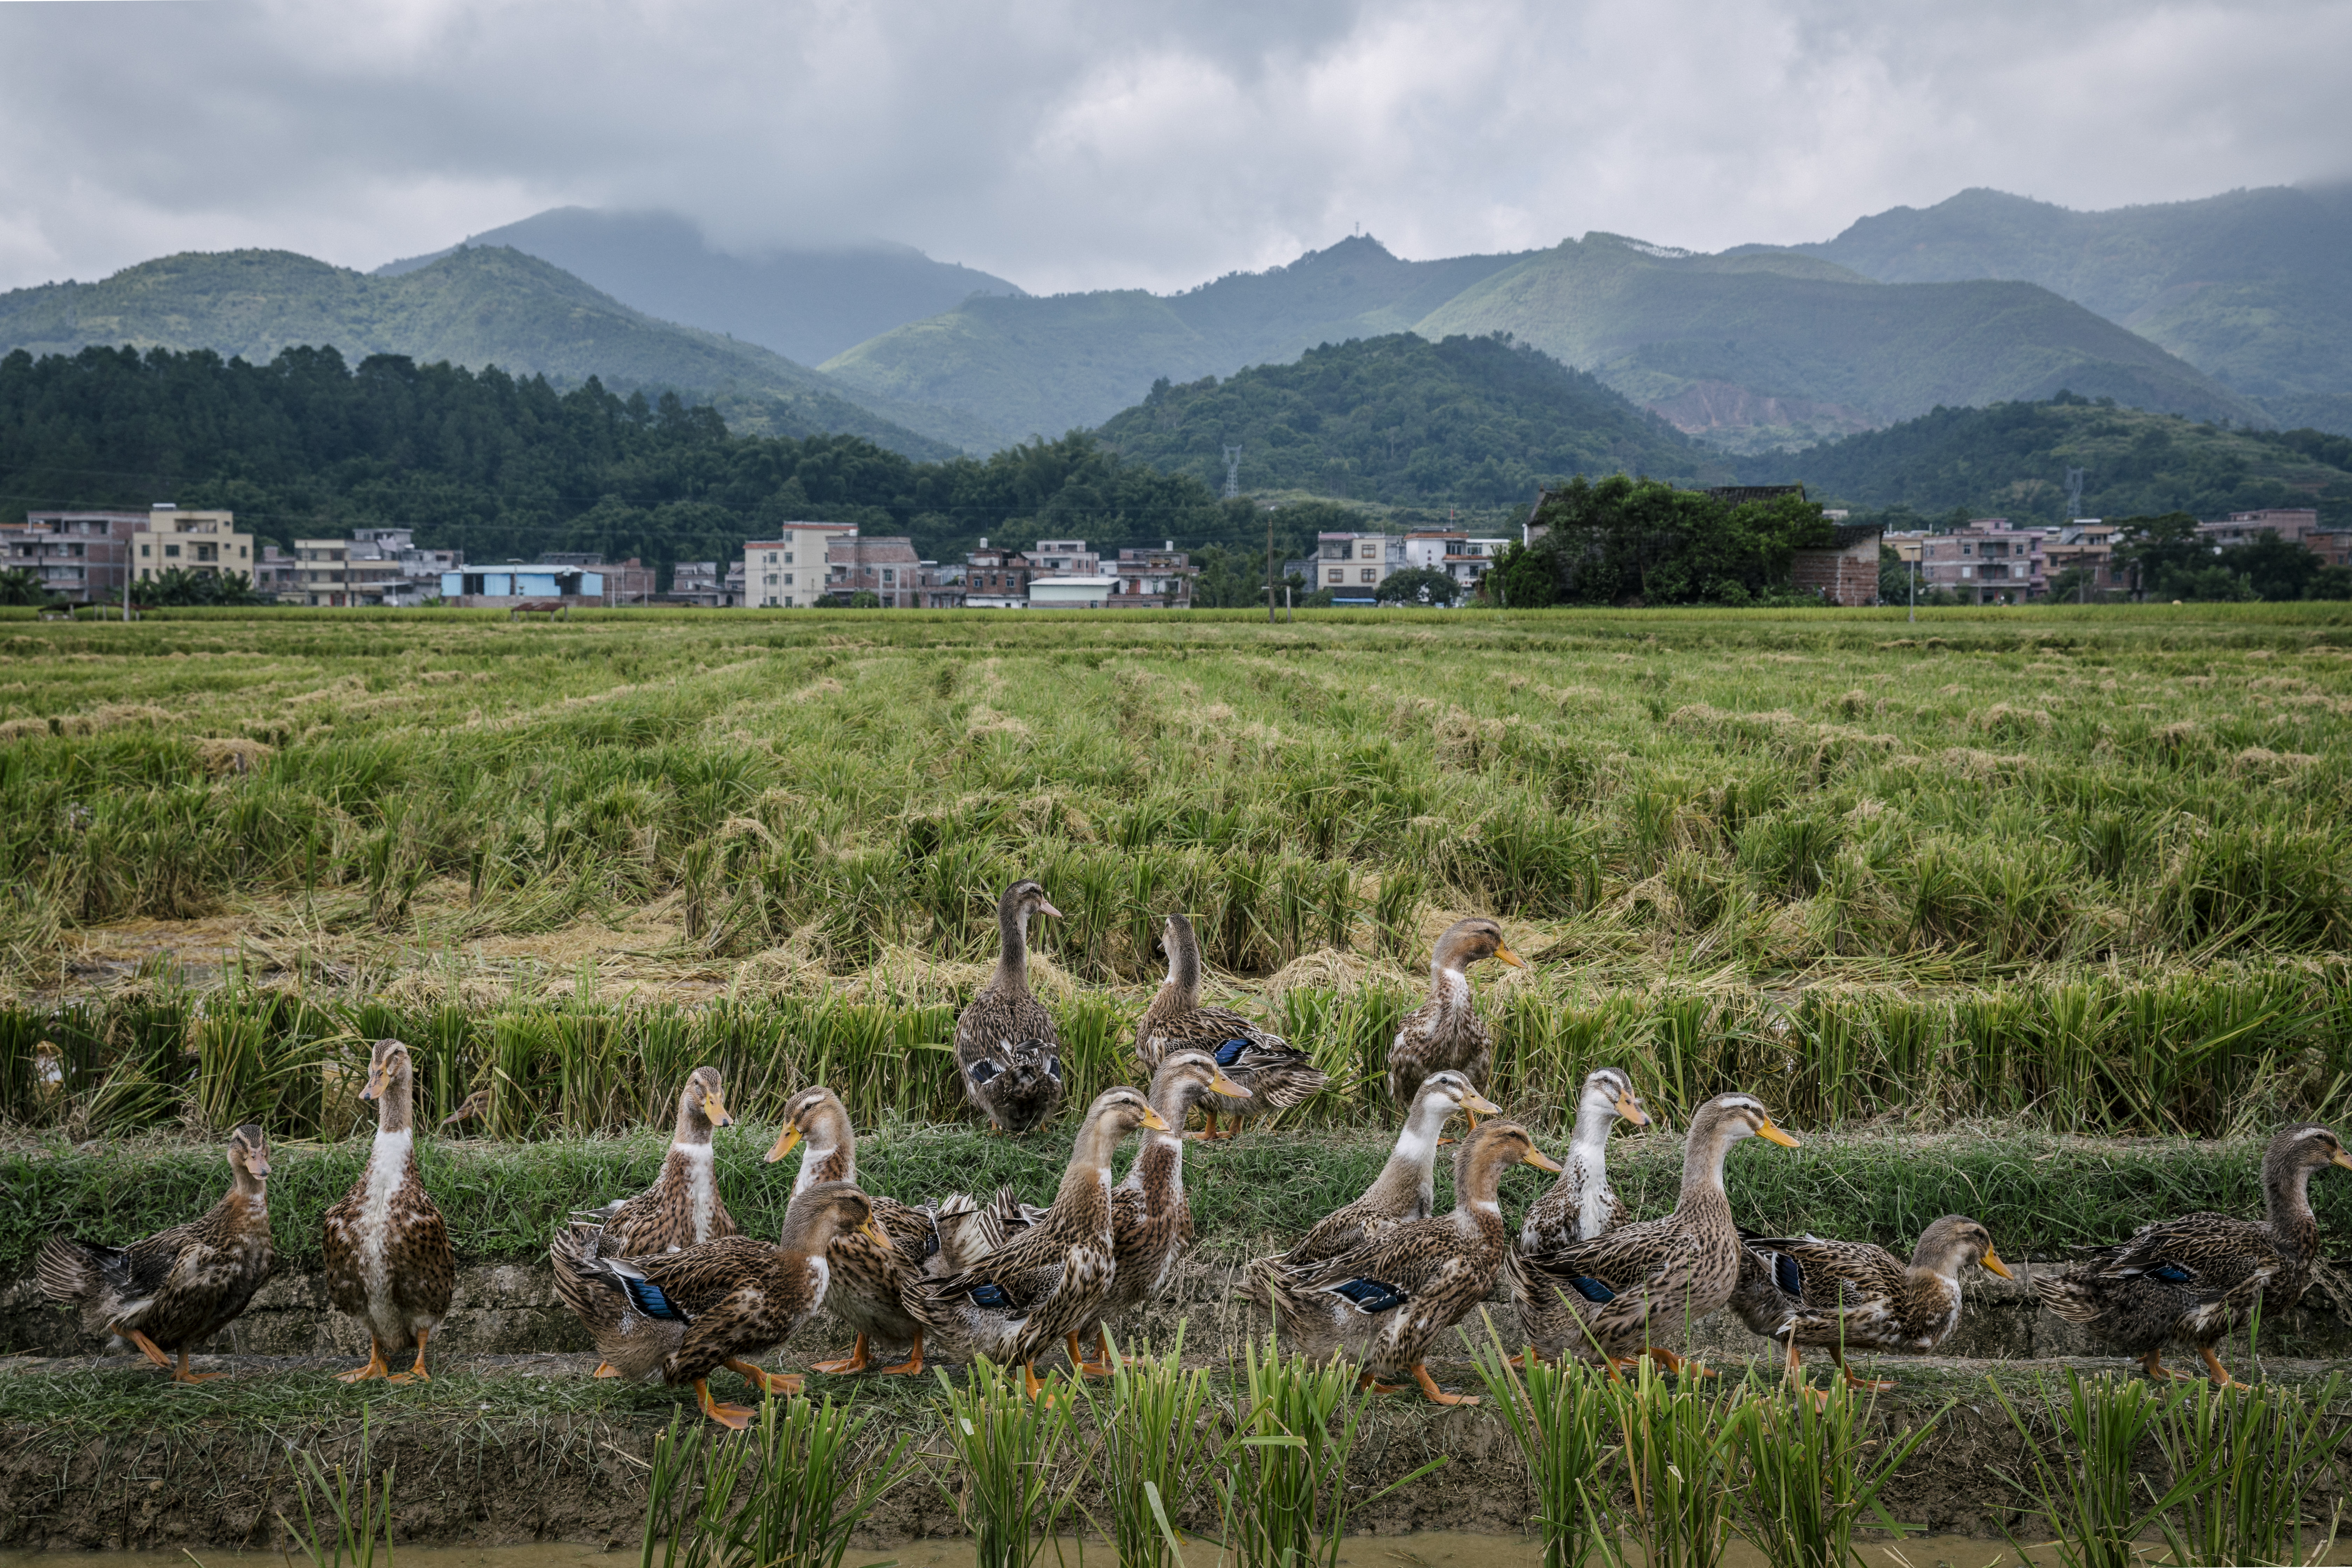 Revival at the farm: Ducks to the rescue in Chinese rice paddy fields